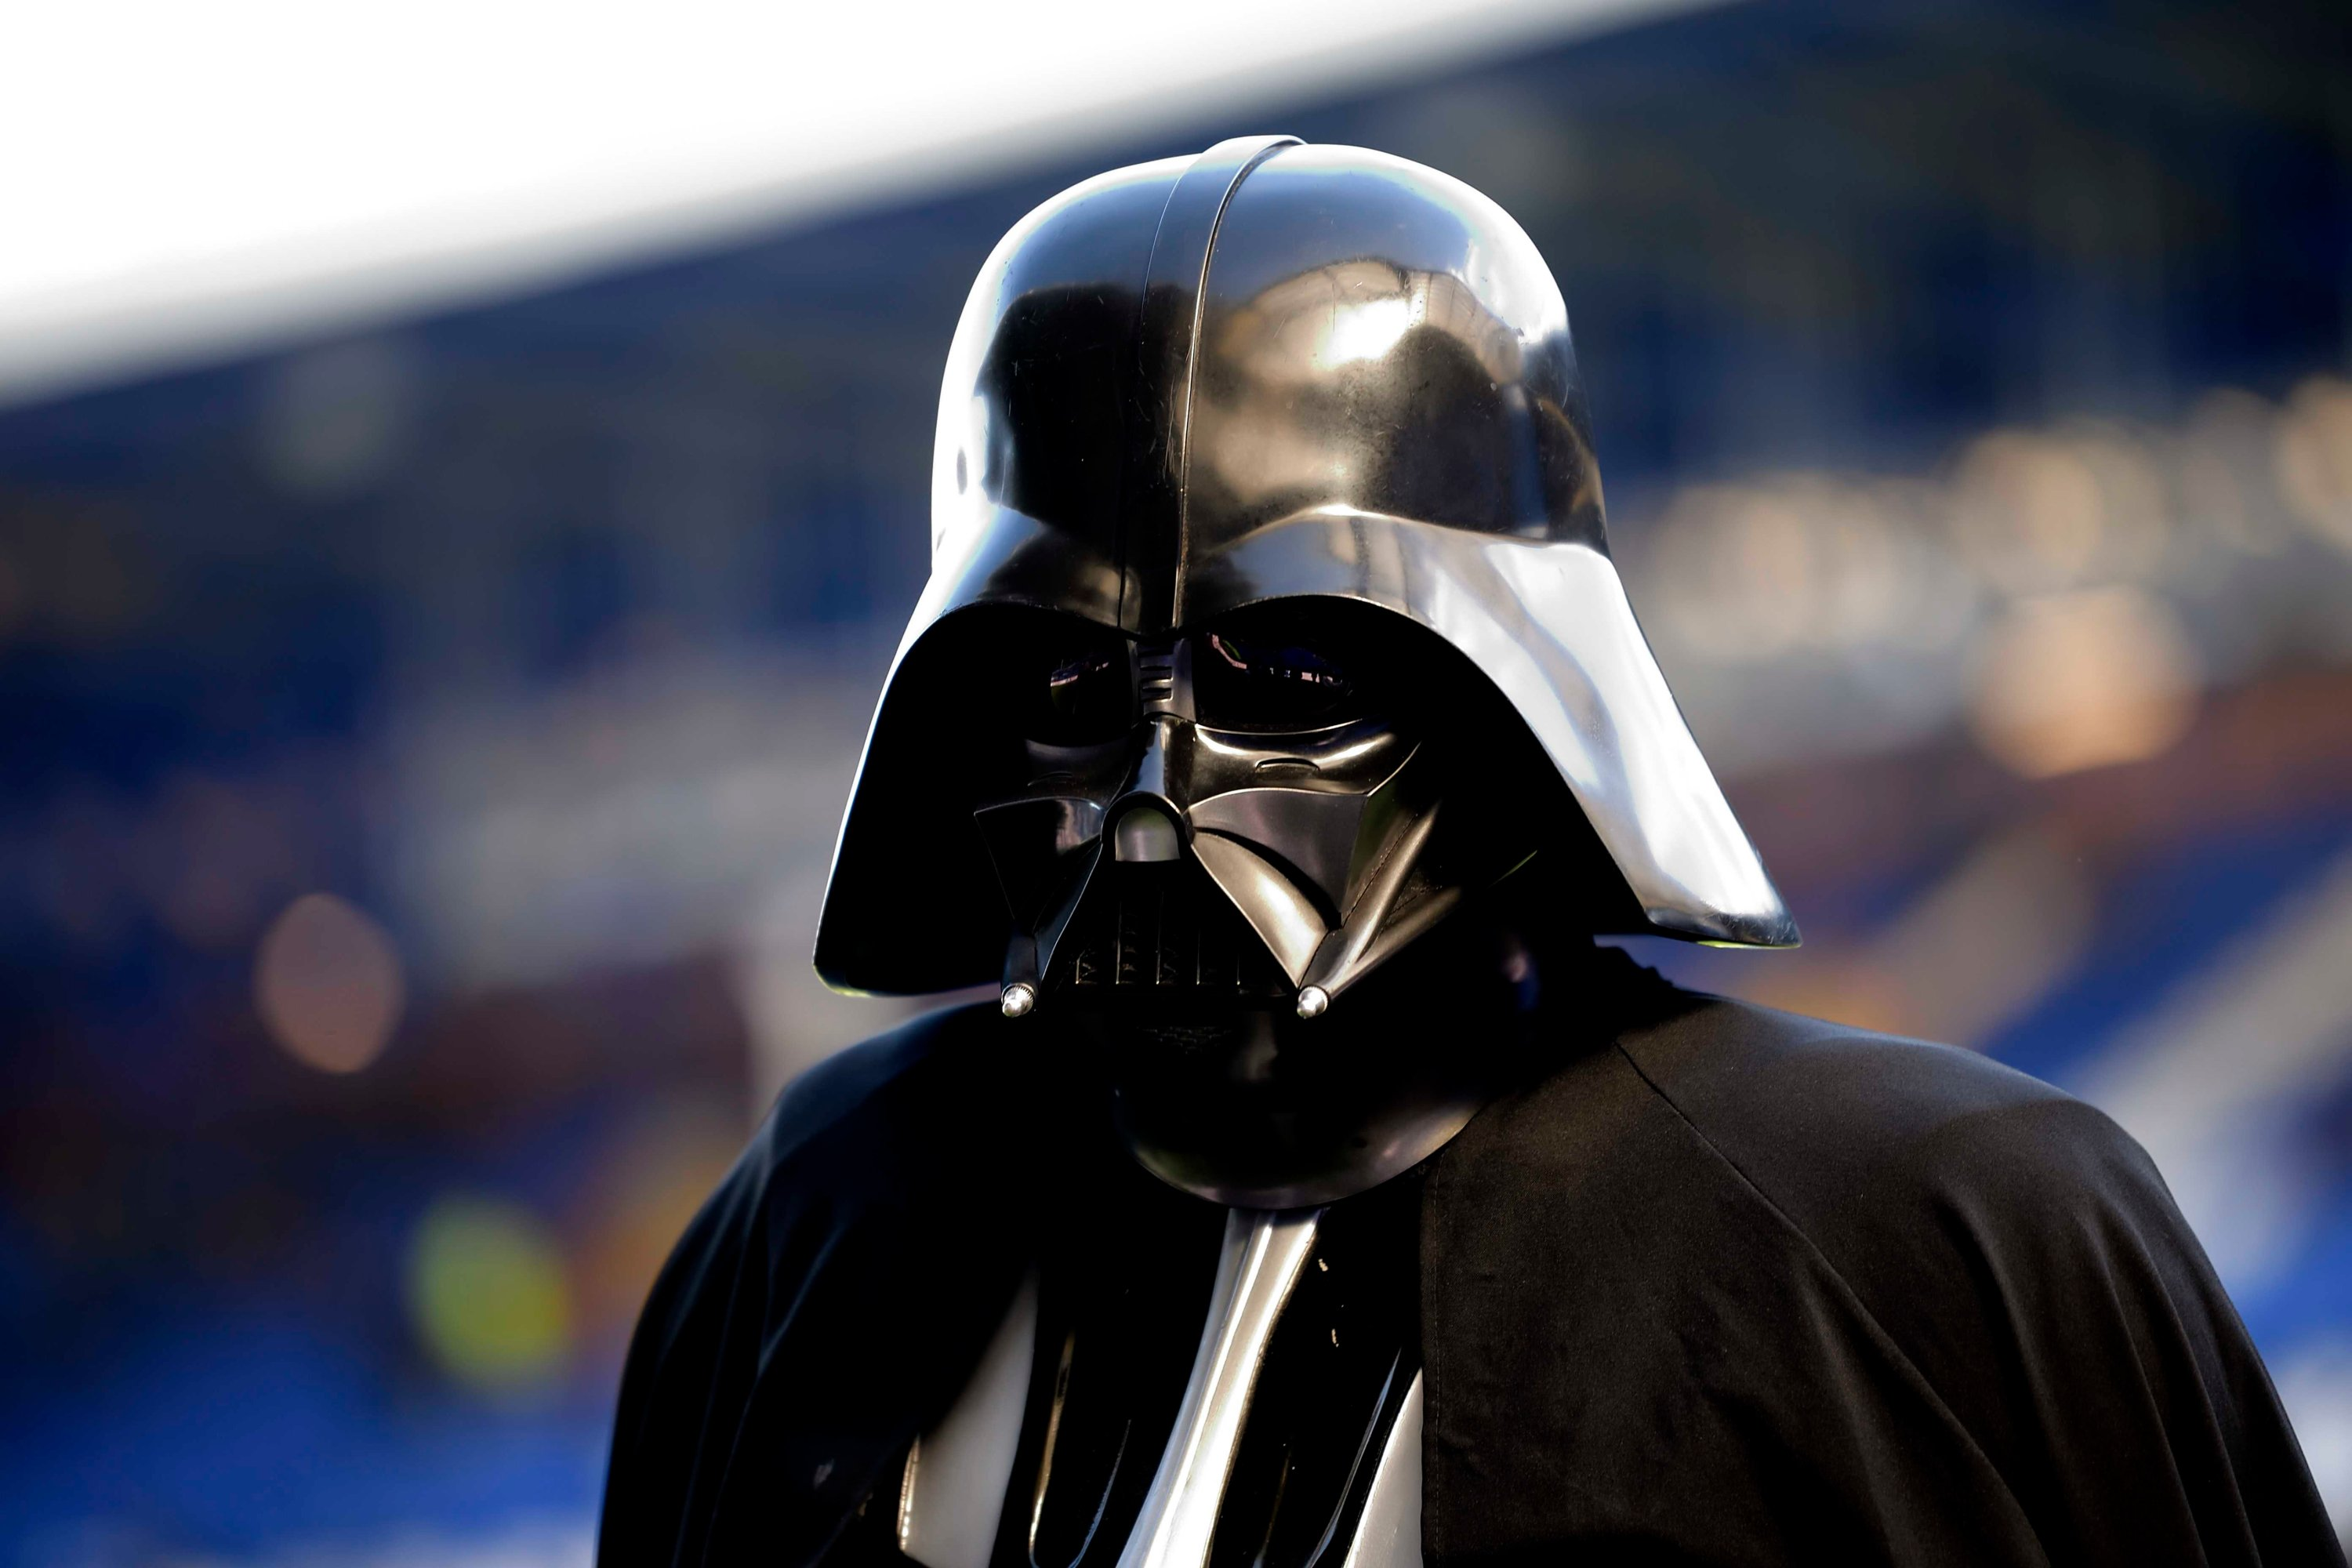 Darth Vader at Goodison Park before the Premier League match between Everton FC and Manchester United at Goodison Park, Liverpool, England, March 1, 2020. (Everton FC via Getty Images)